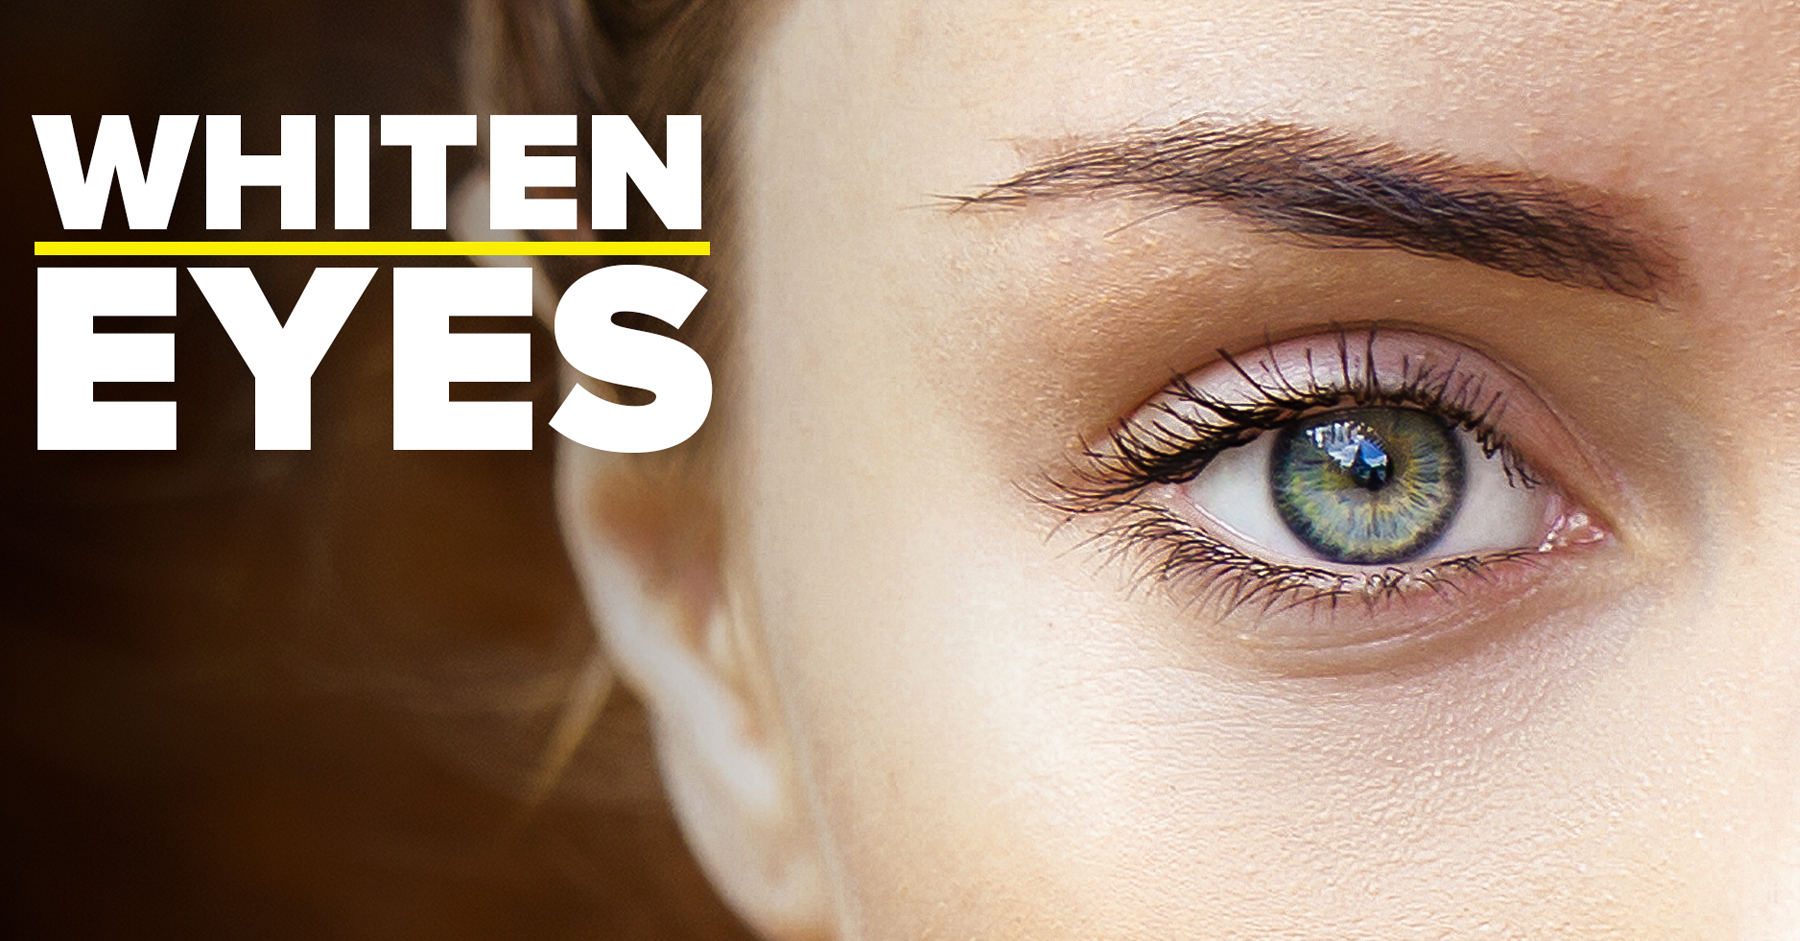 How To Whiten Eyes In Photoshop